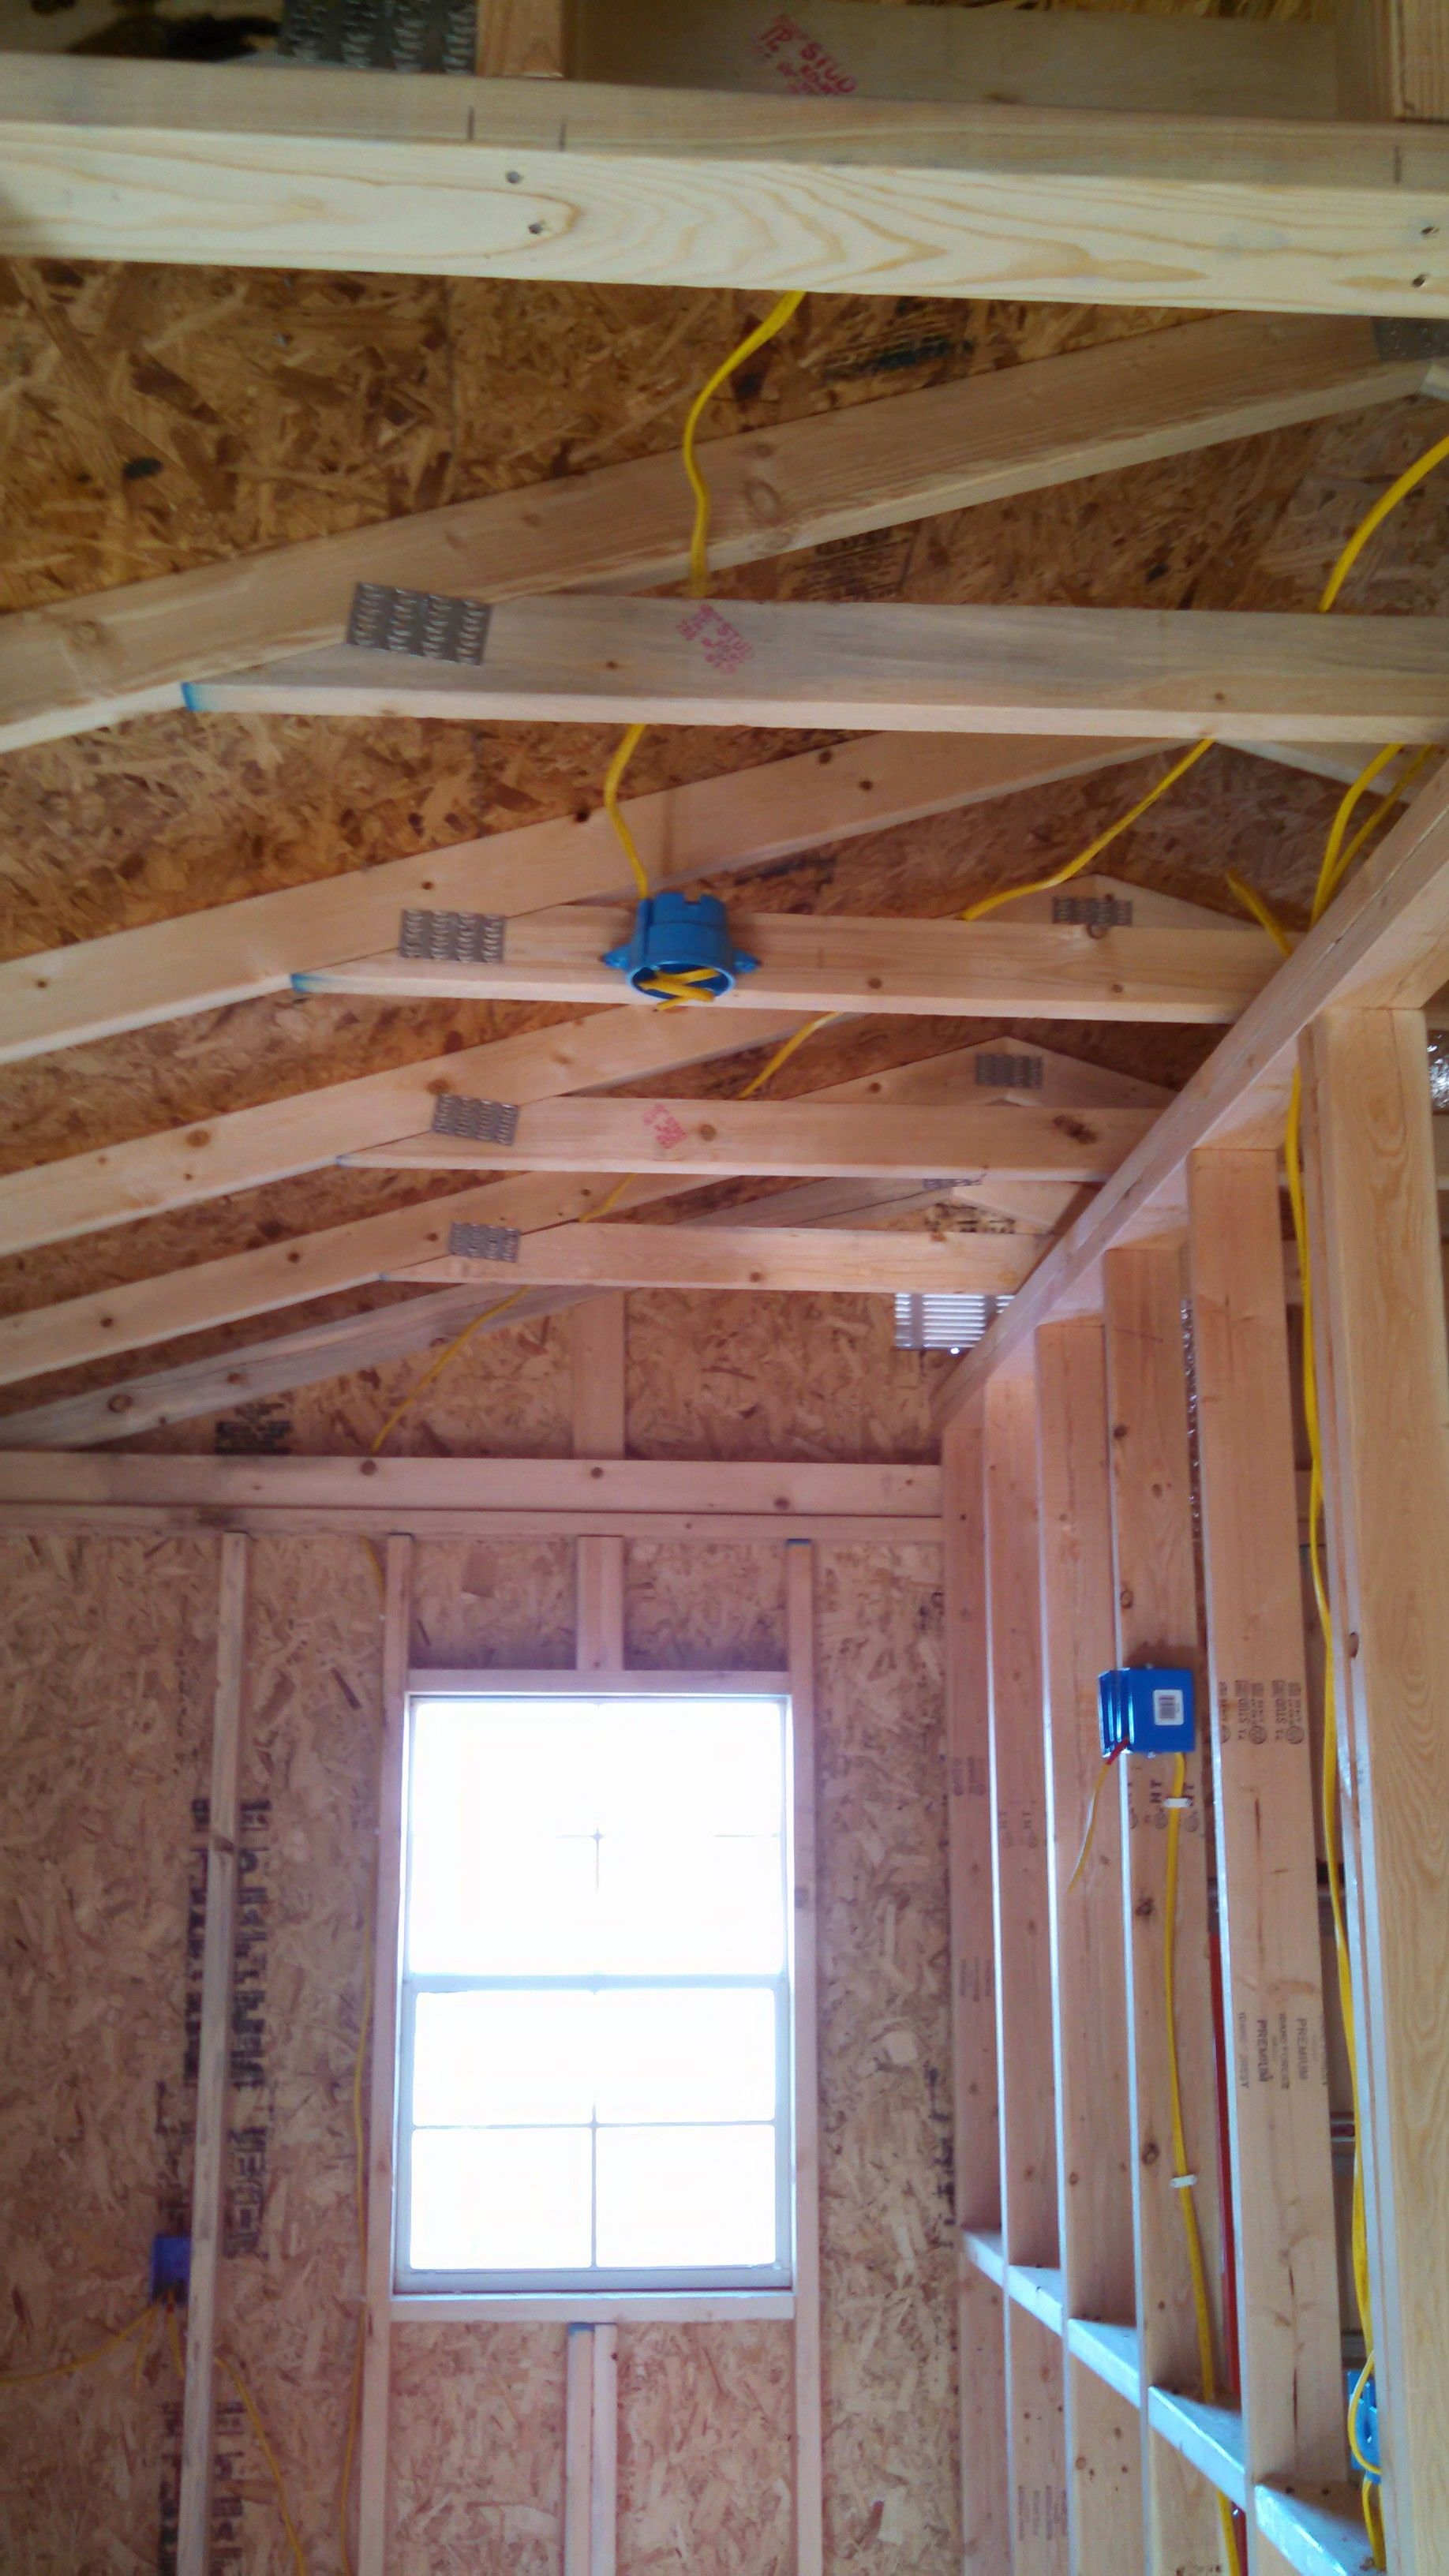 Bedroom framing and rough in electrical done. | Tiny home ...